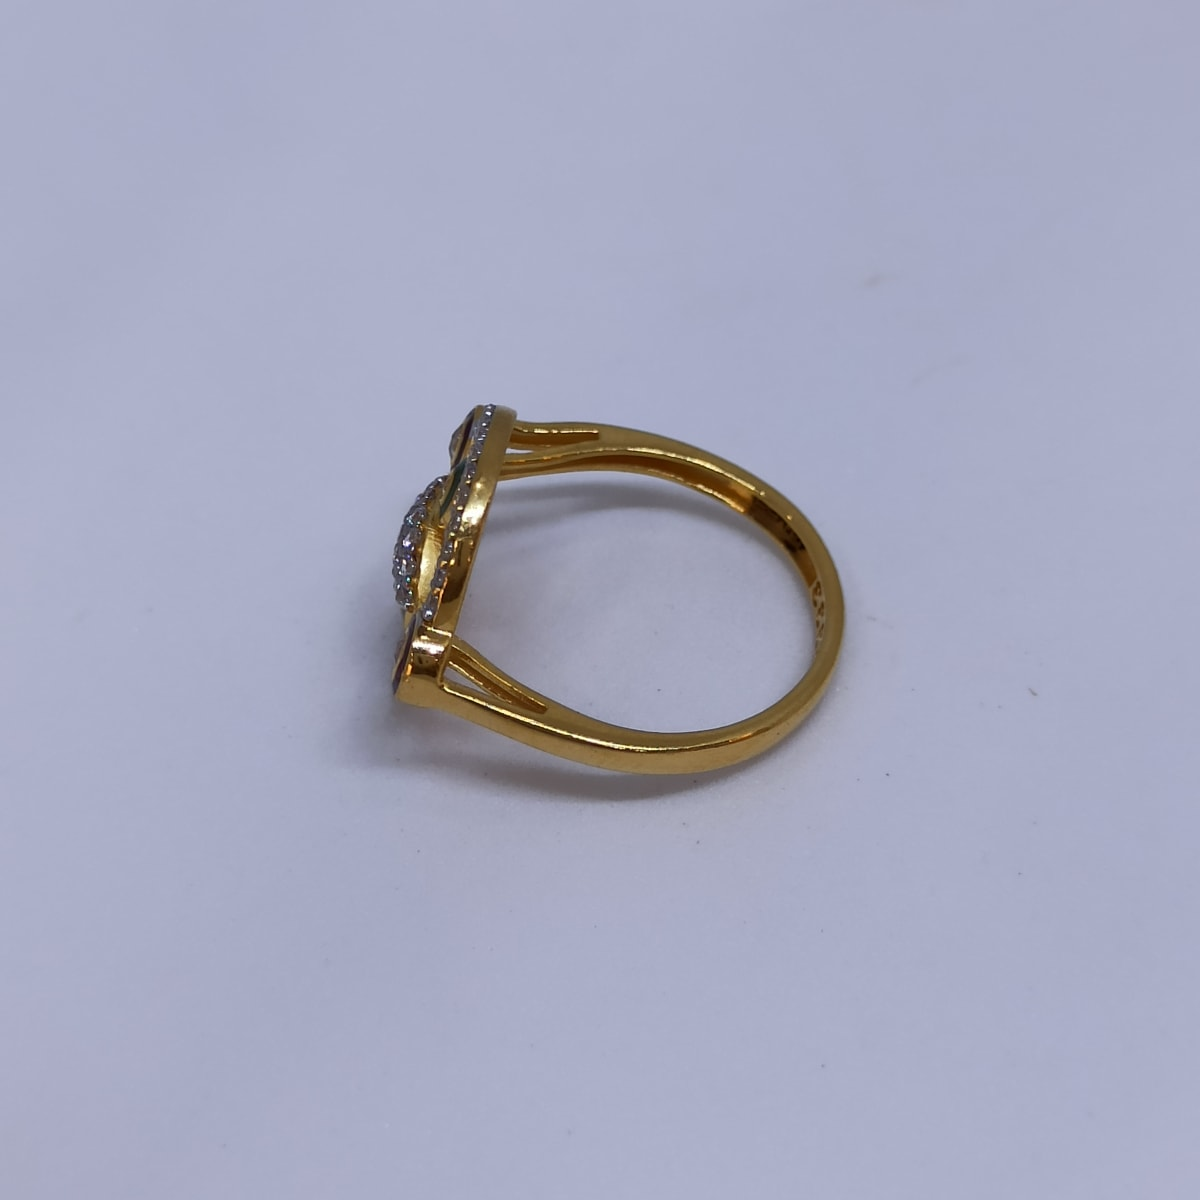 Oval Cz Enemaled Ring